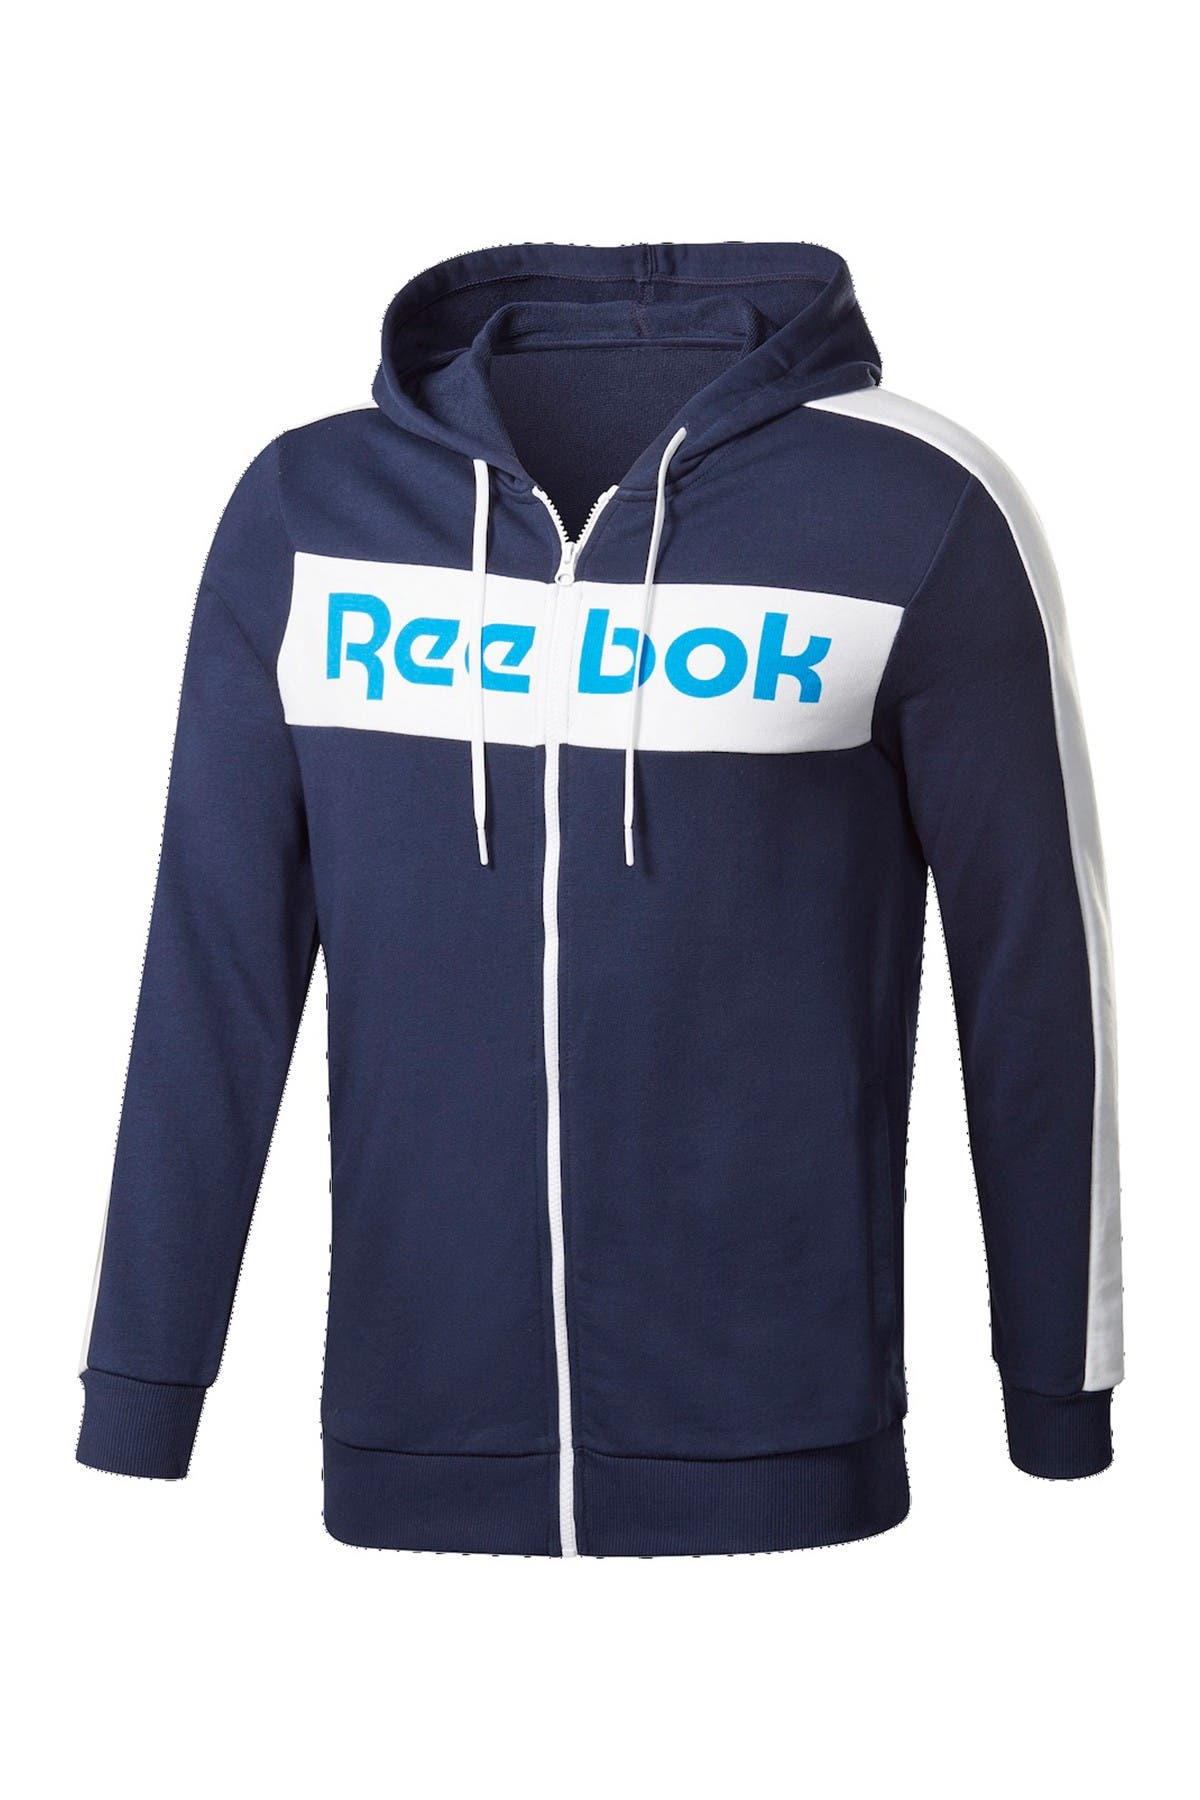 Image of Reebok Logo Zip French Terry Hoodie